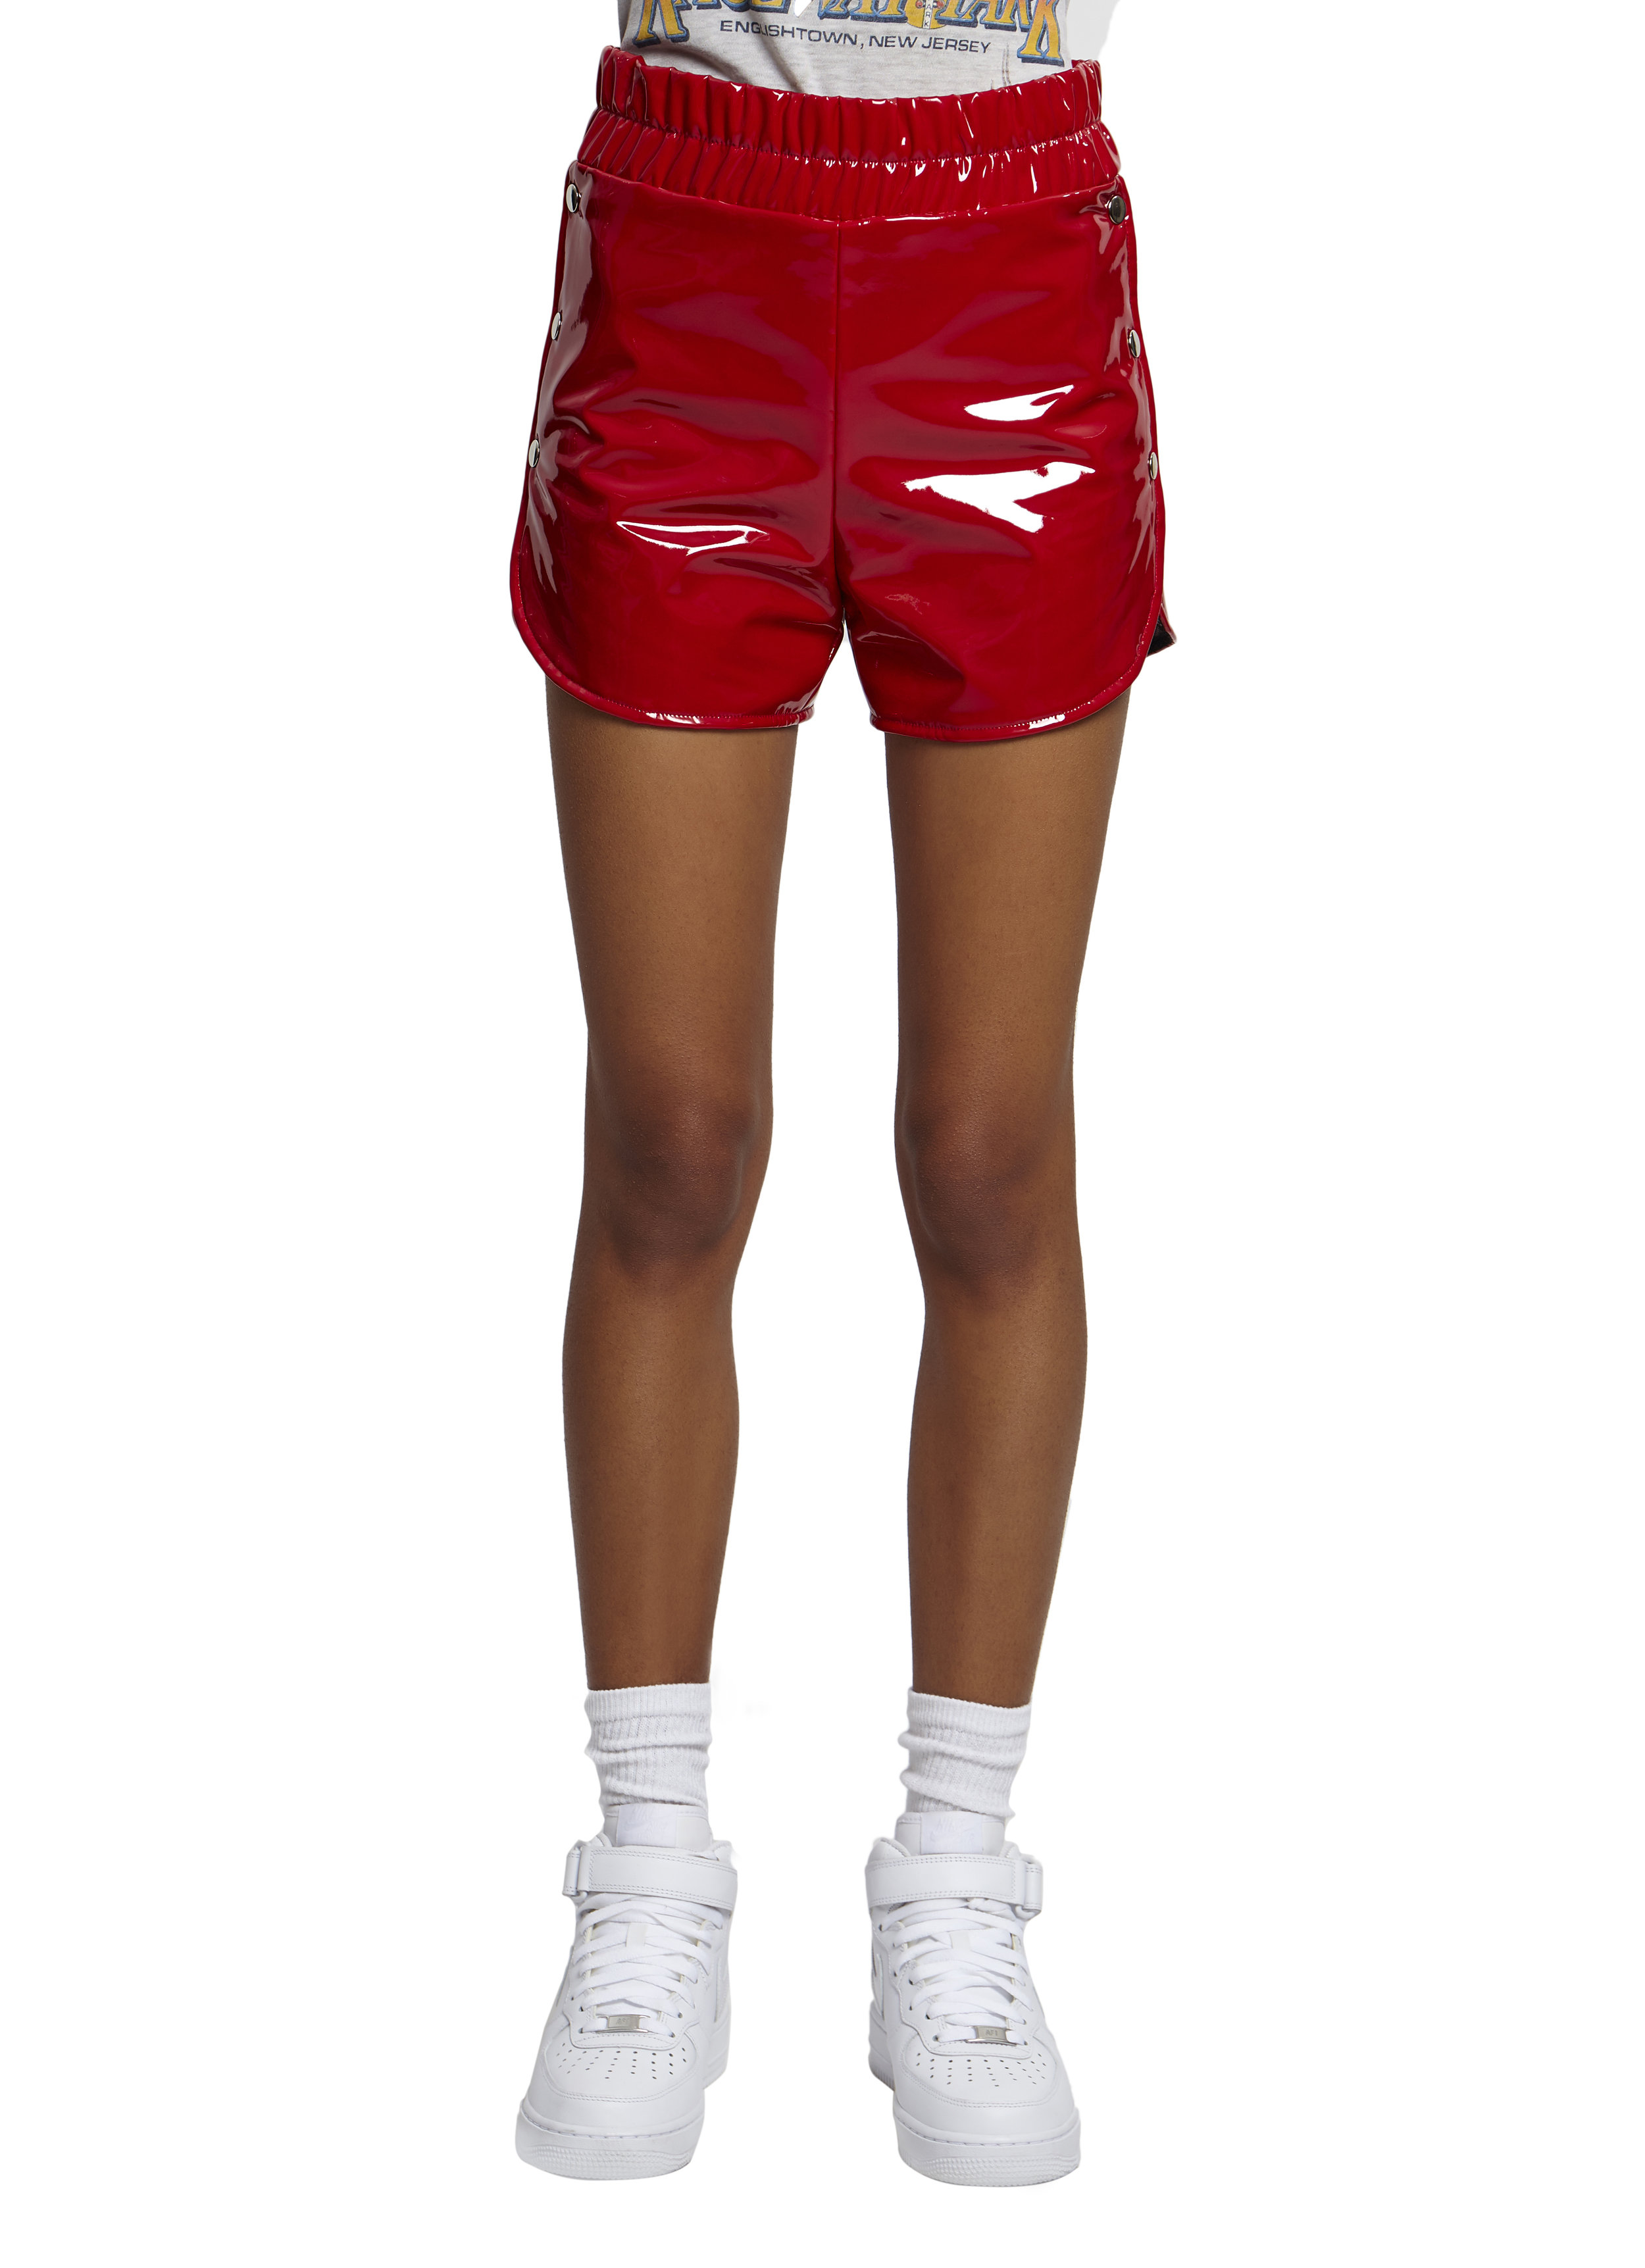 proserpine patent shorts - Red Danielle Guizio Cheap Sale From China Browse Cheap Price qNqUqf10